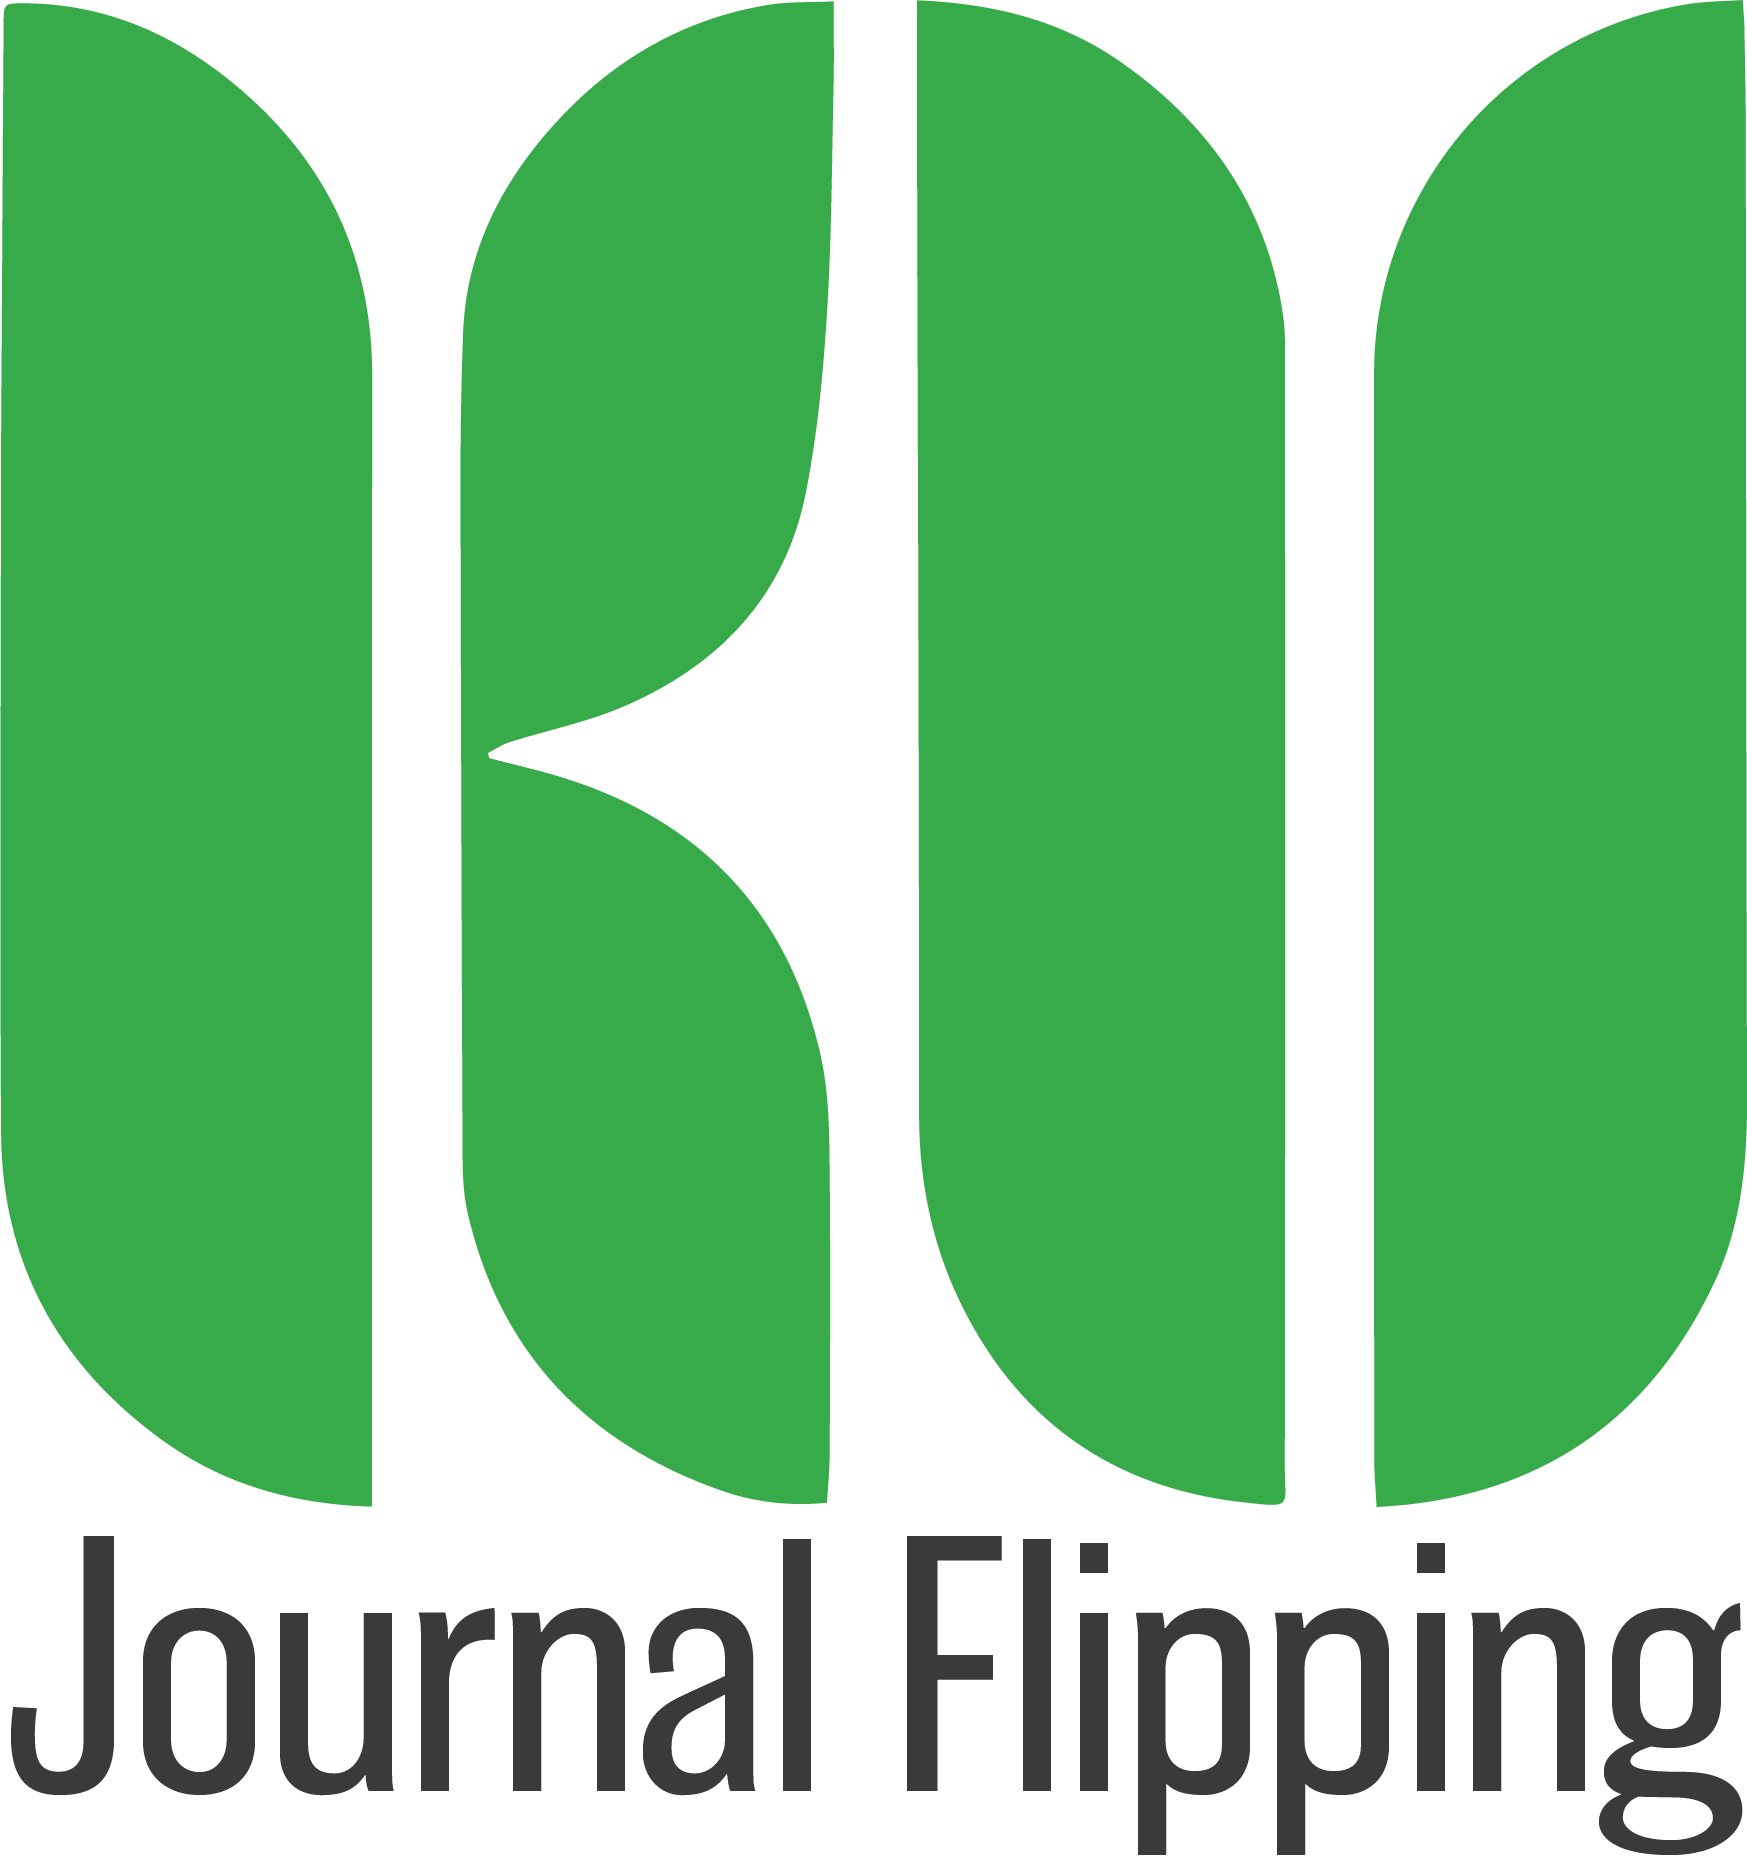 KU Journal Flipping logo